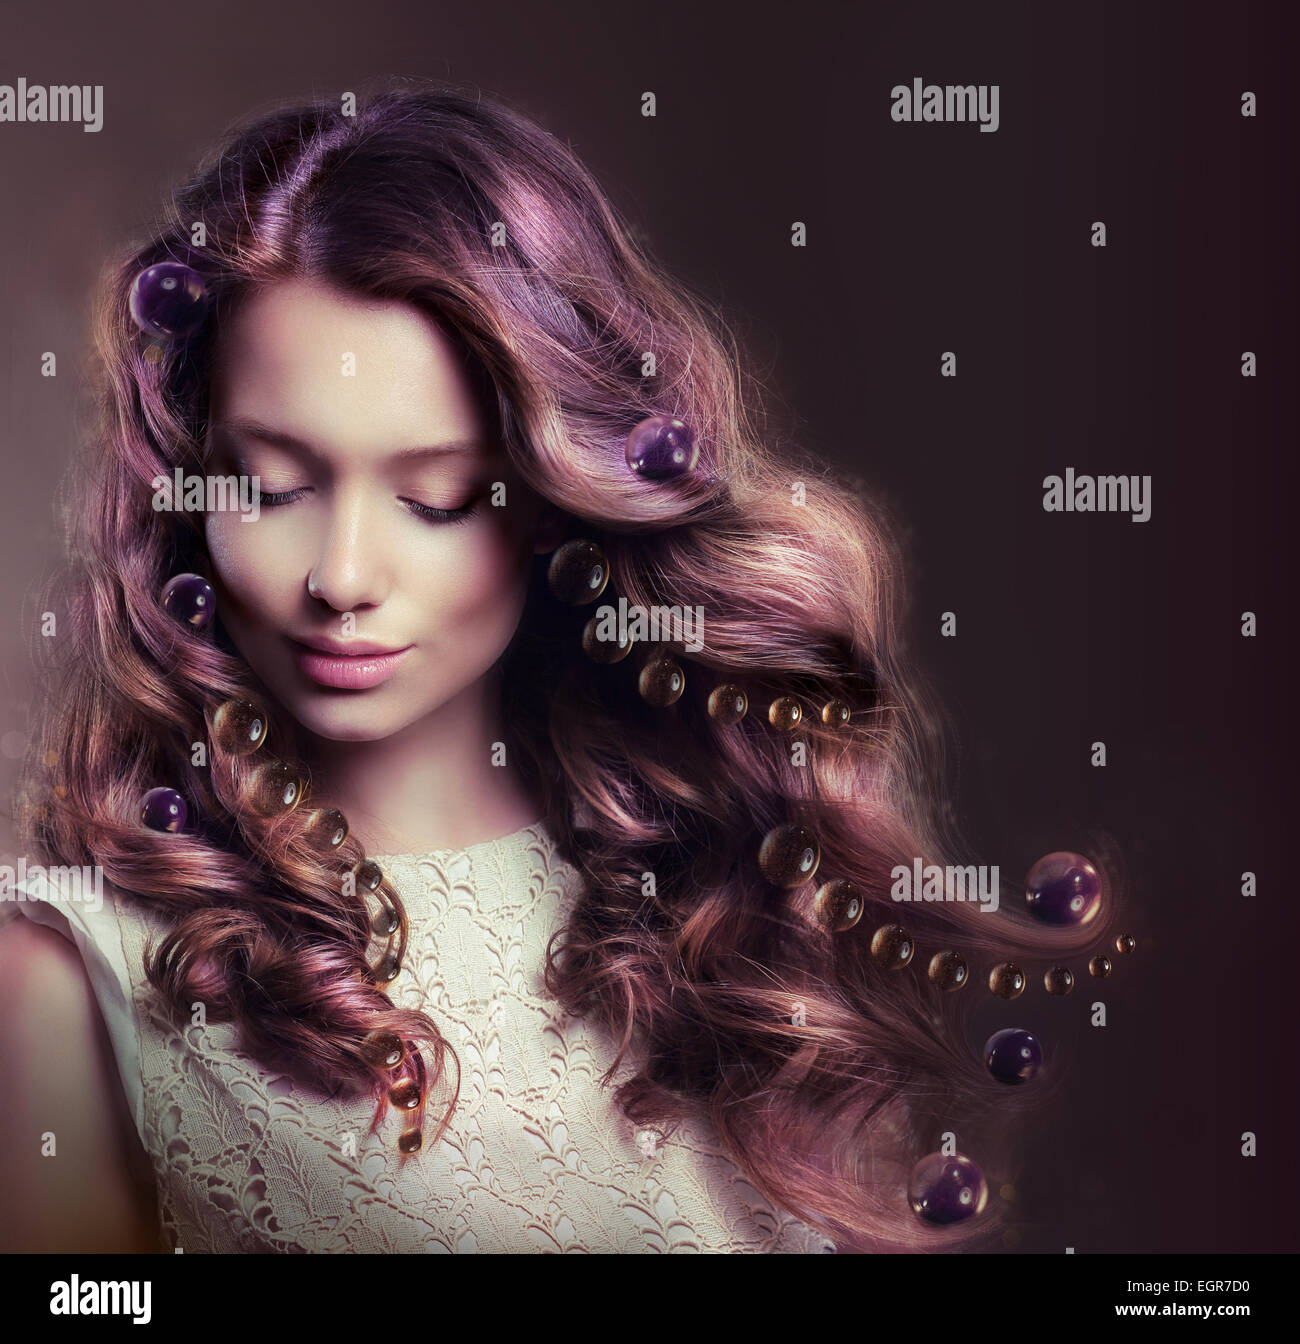 Beauty Portrait of Young Woman with Flowing Hairs - Stock Image